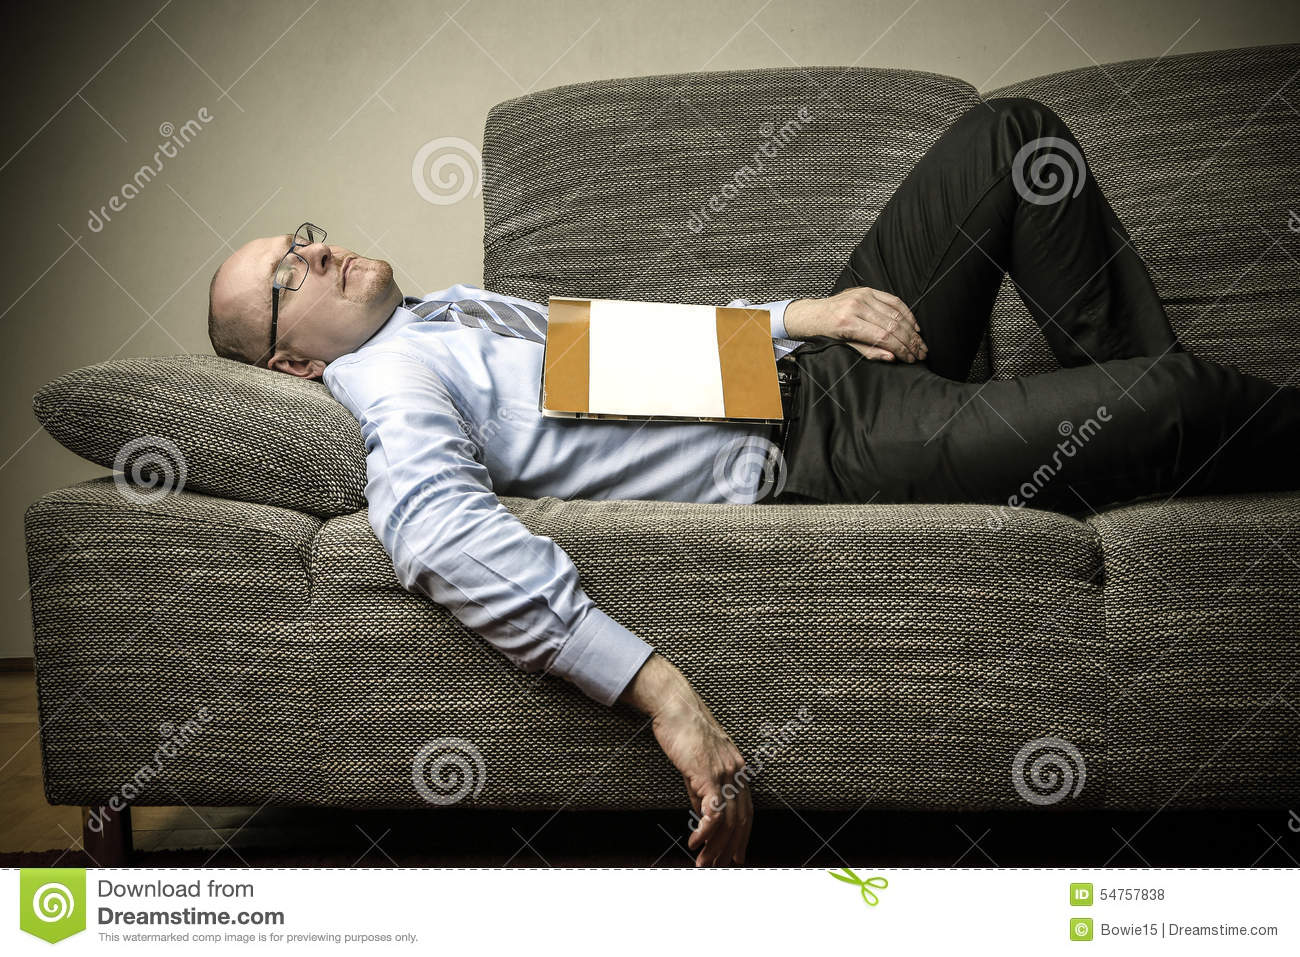 Sleeping On The Couch Stock Photo  Image 54757838